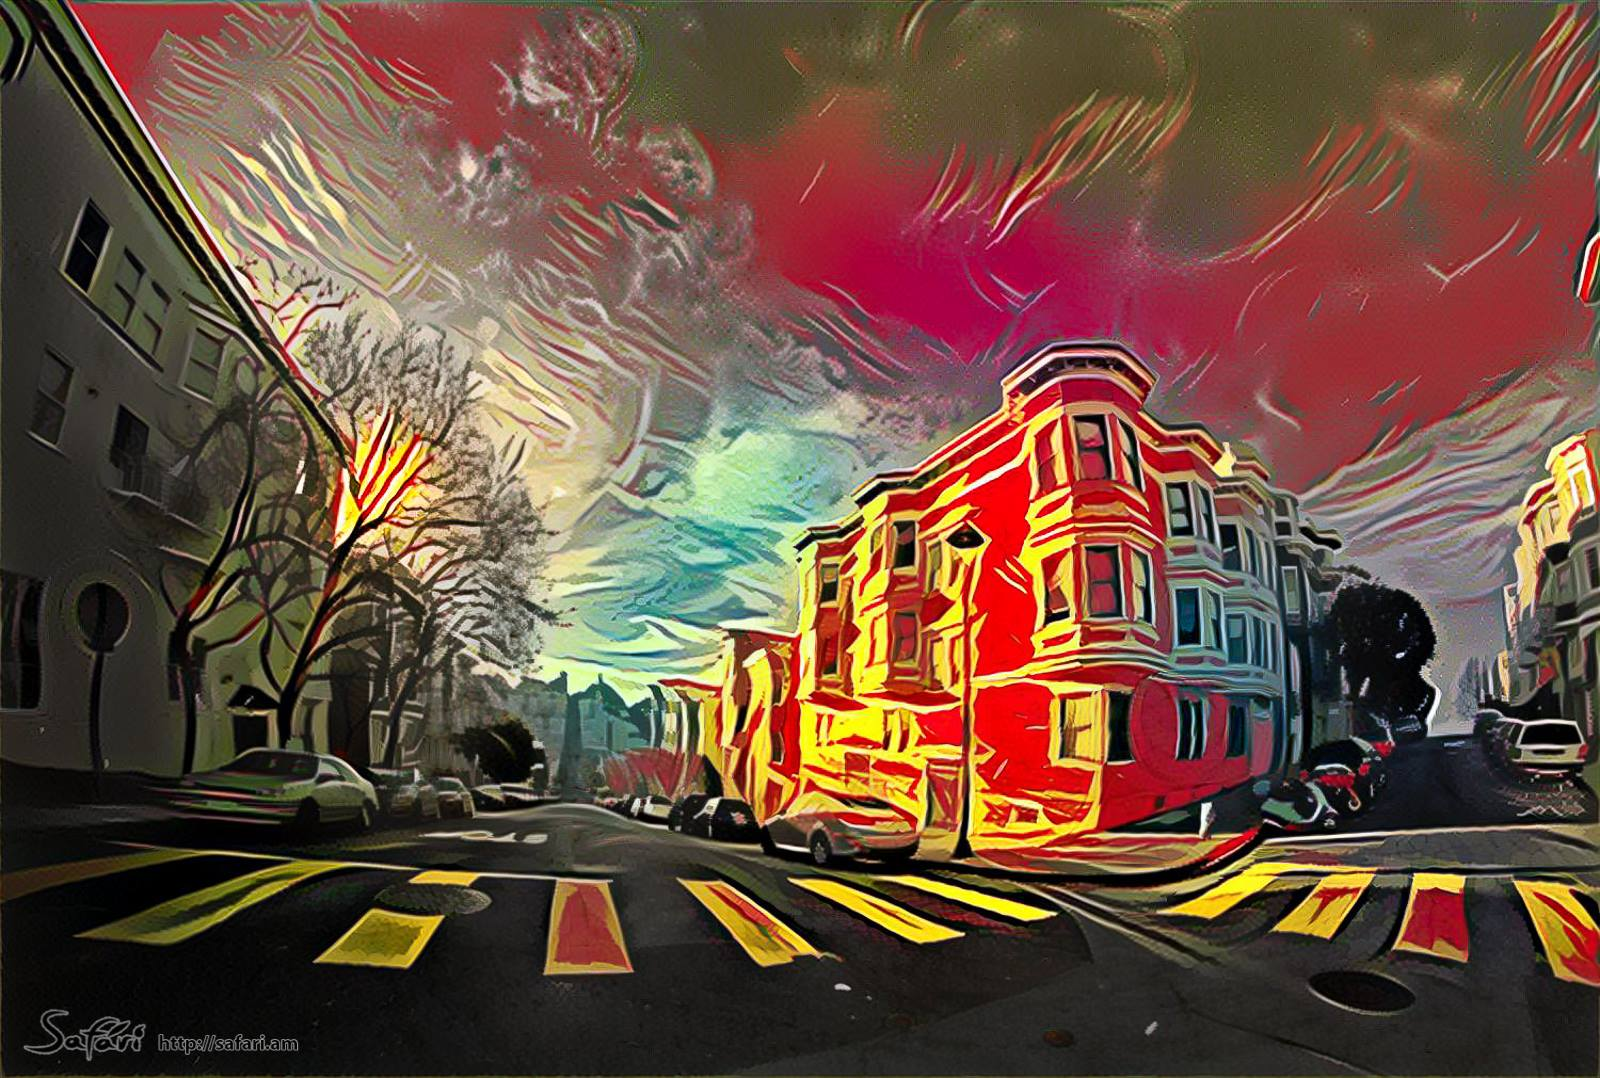 Walking around San Francisco V1.0 by Anastasiy Safari